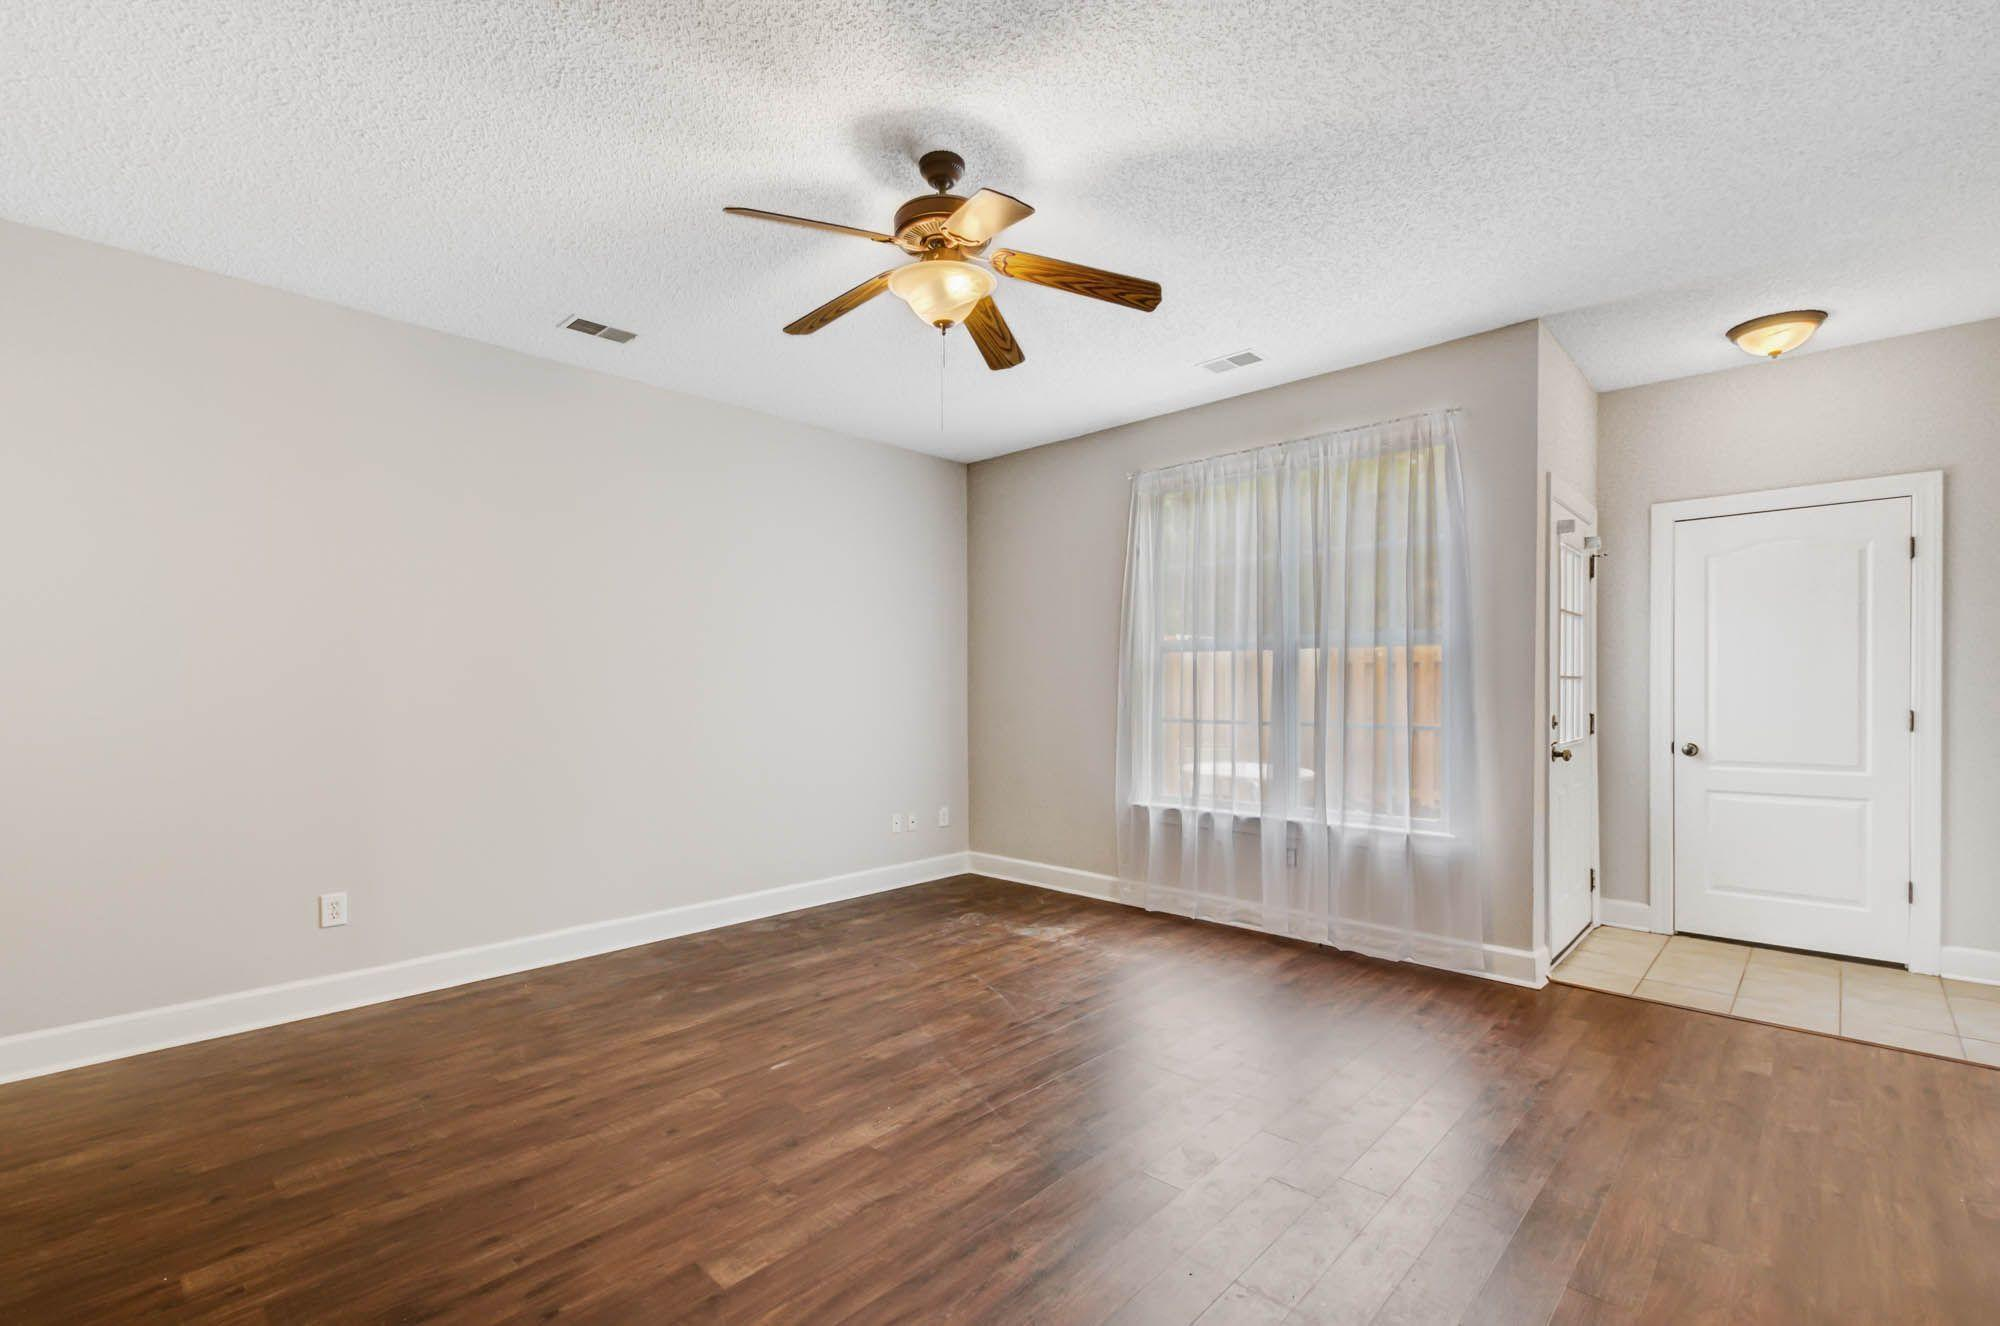 Whitney Lake Condos For Sale - 2926 Sugarberry, Johns Island, SC - 20